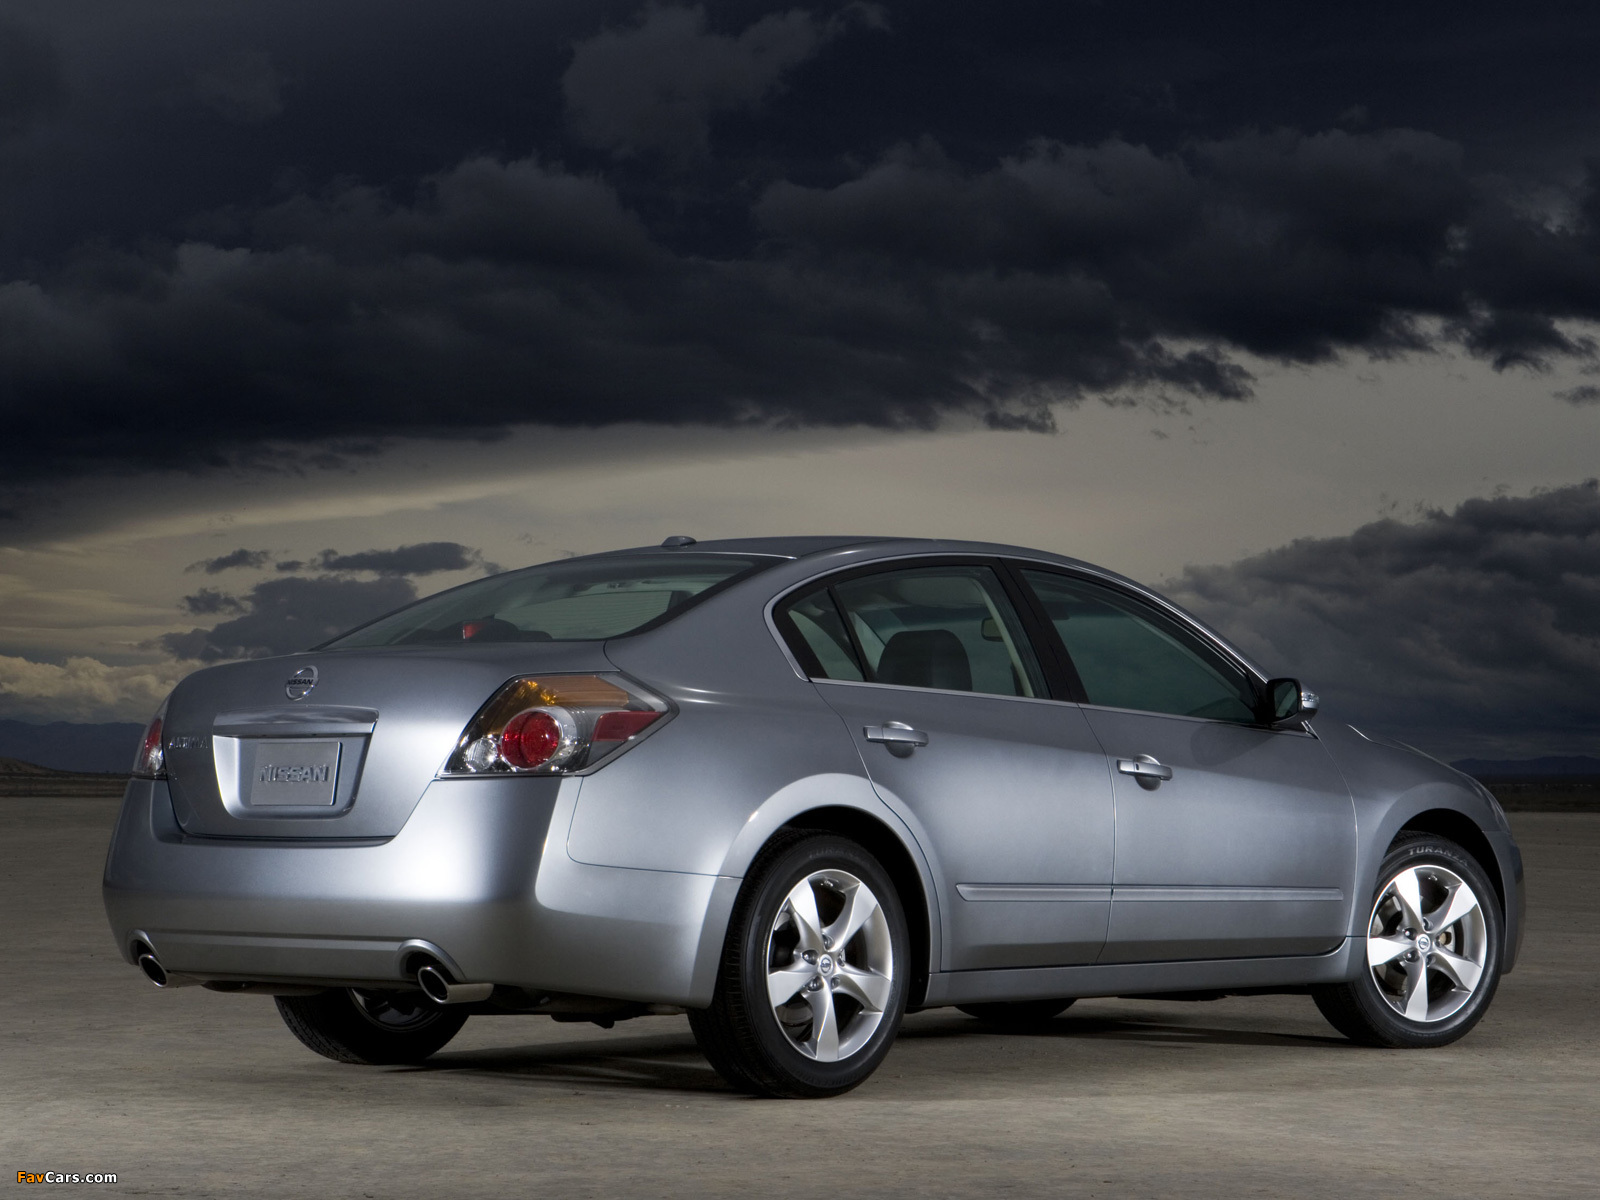 Nissan Altima 2006 09 Wallpapers 1600x1200